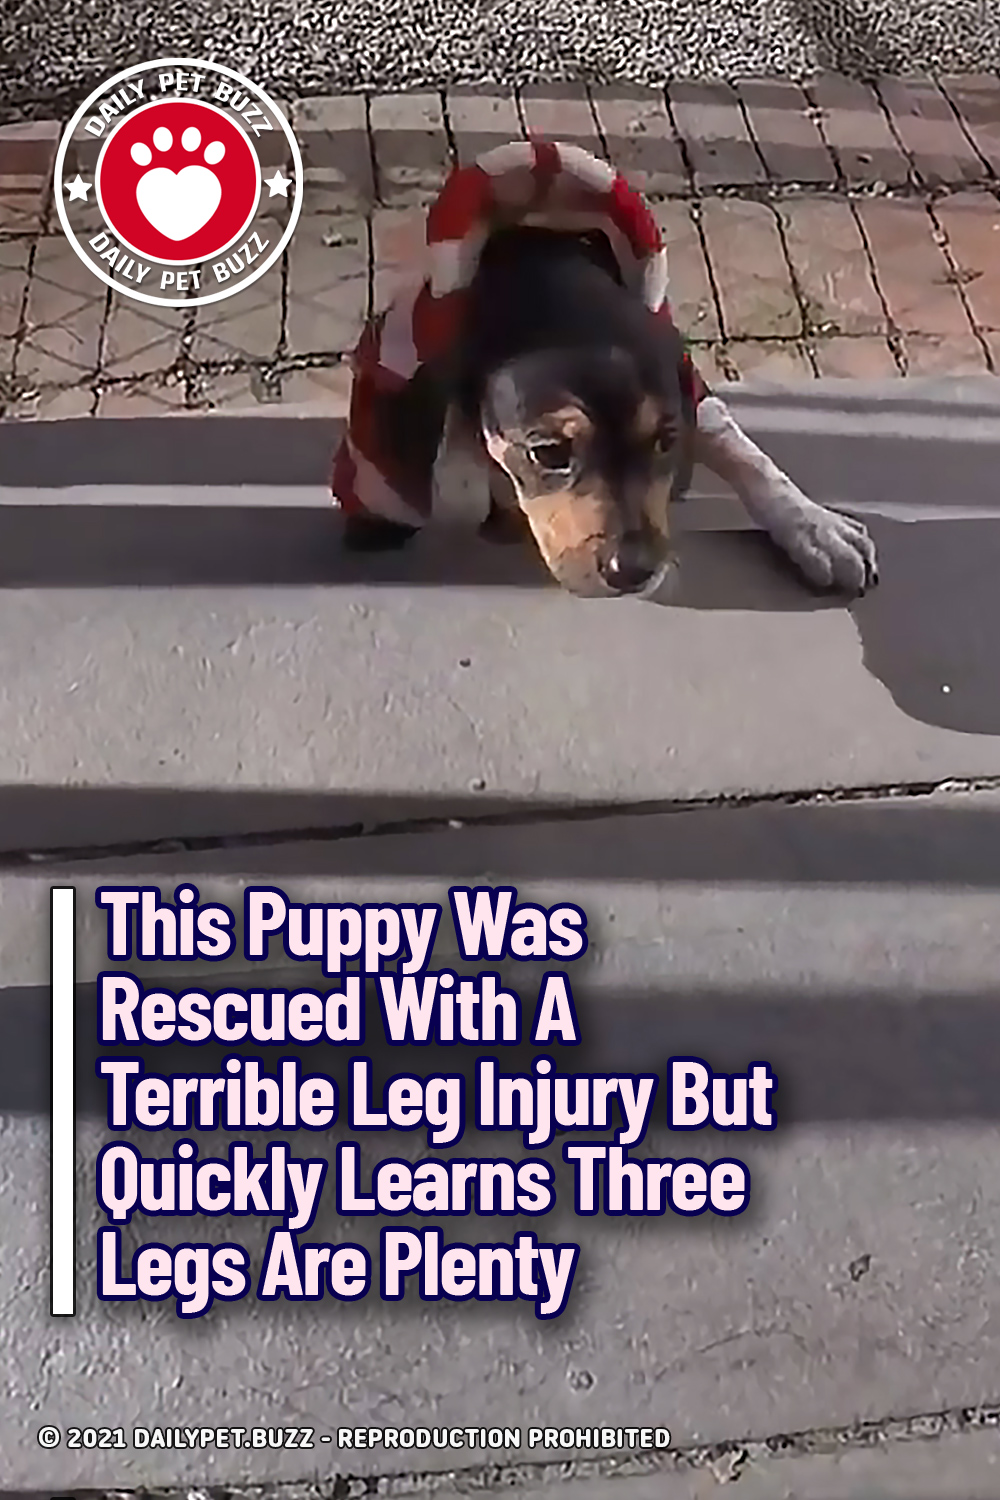 This Puppy Was Rescued With A Terrible Leg Injury But Quickly Learns Three Legs Are Plenty